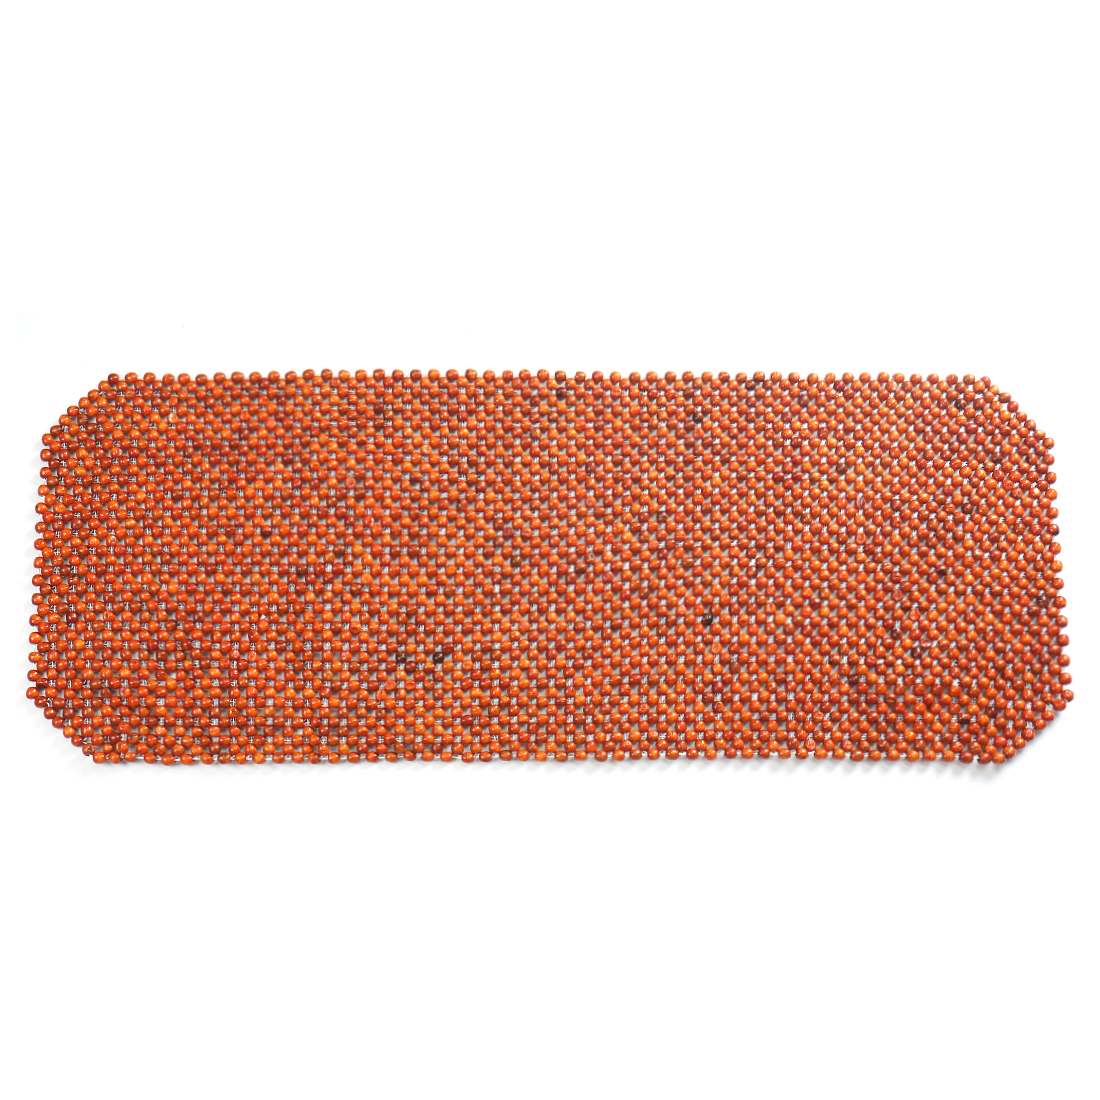 120 x 50cm Brown Wooden Multi Beads Connected Back Seat Cushion Pad Cover for Car